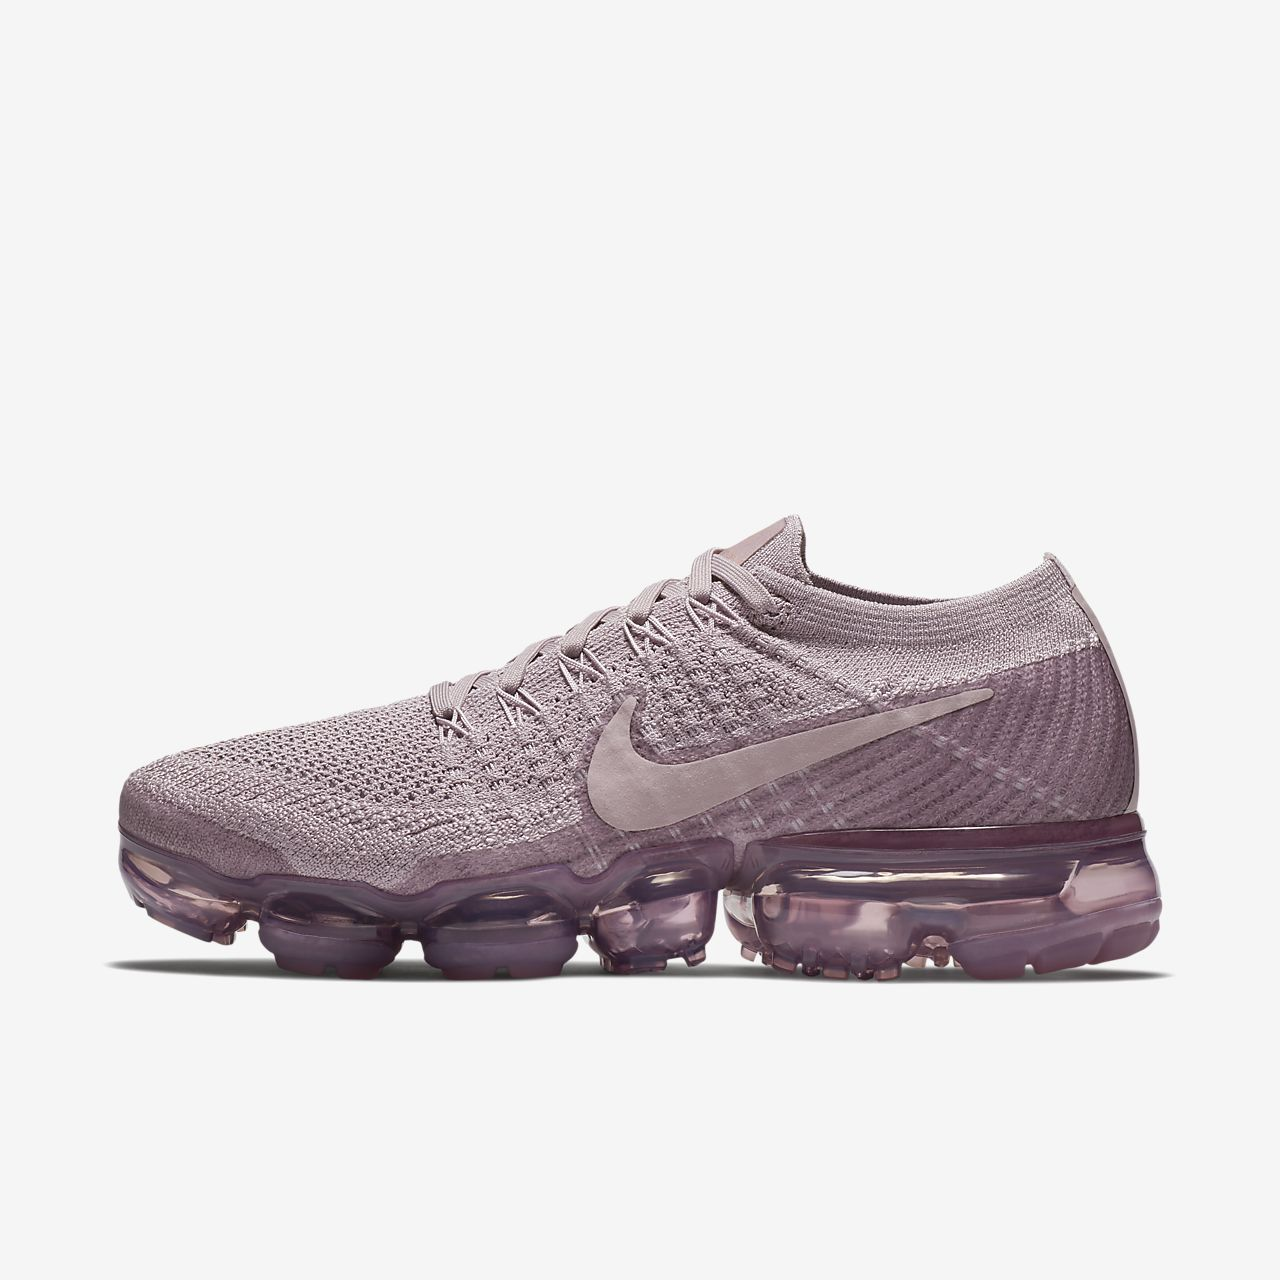 official photos a0b47 e405c Nike Air VaporMax Flyknit Women's Shoe. Nike.com SG